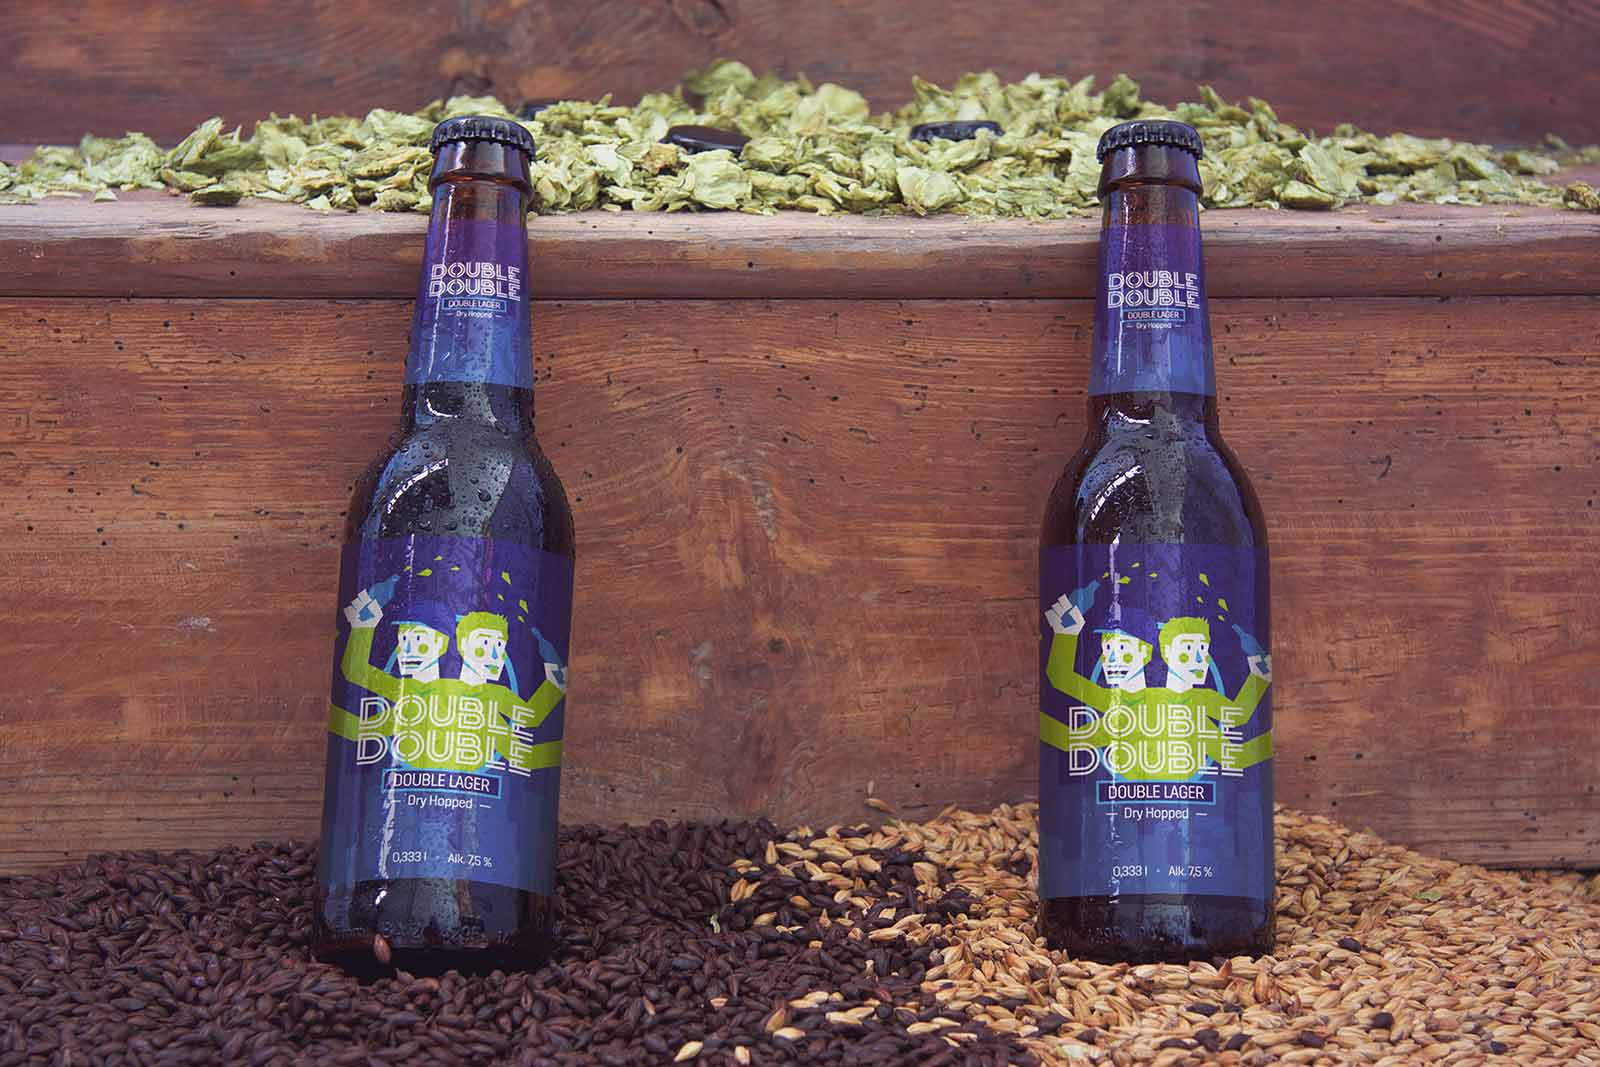 Hop Hunters Beer Bottle packaging label design